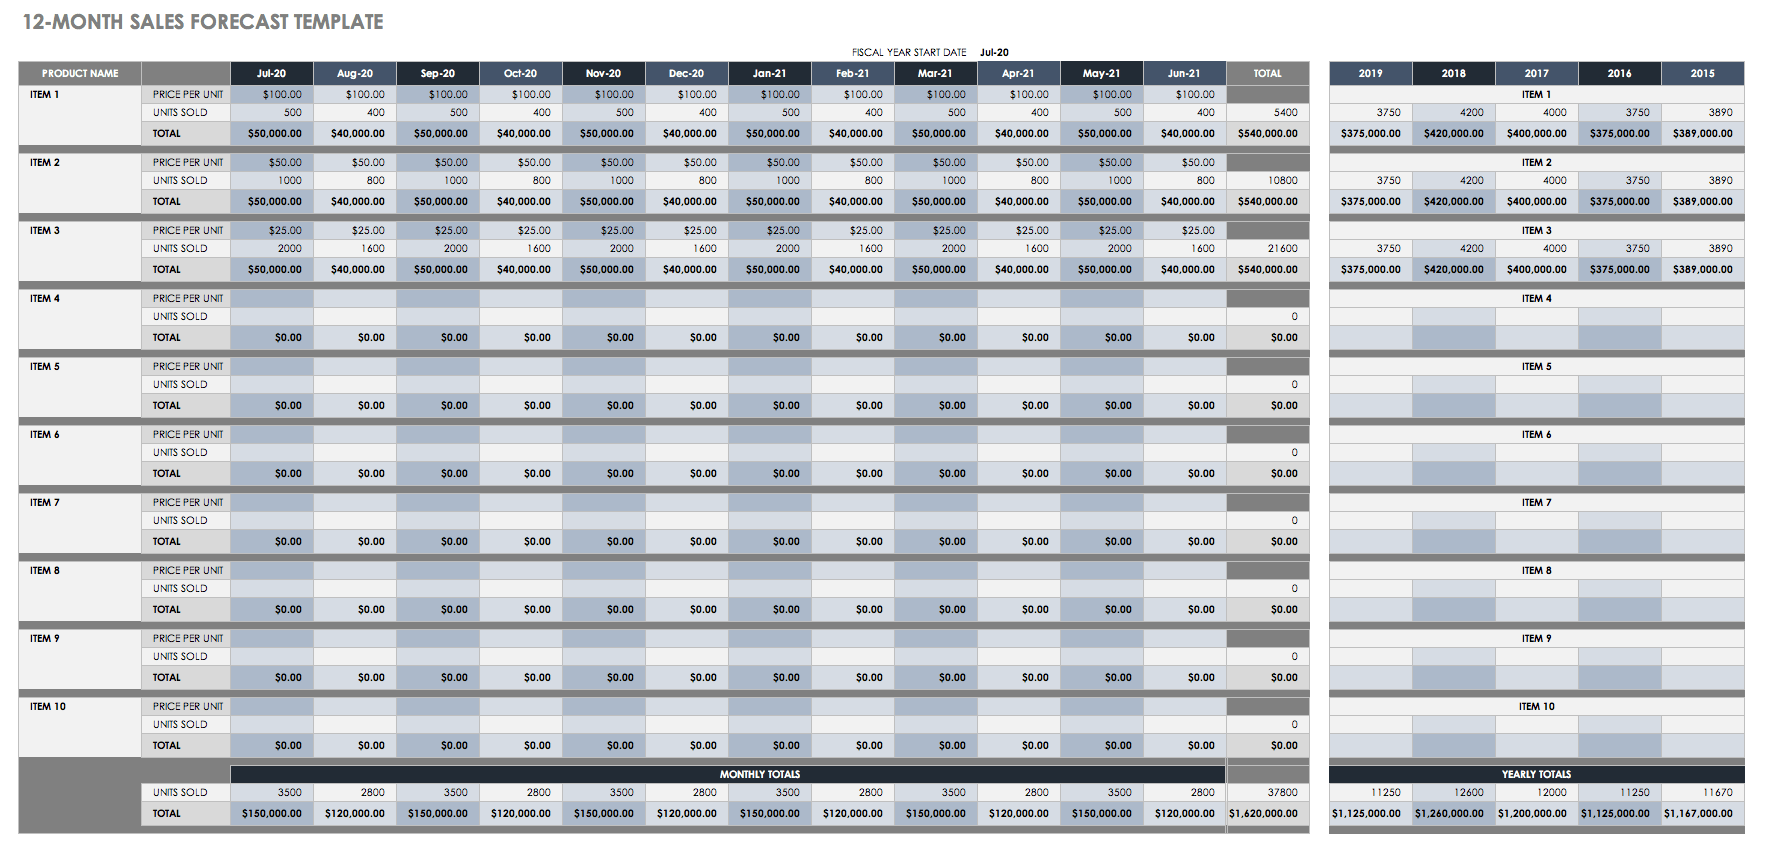 Letters Of Sales Forecast Excel Template With Sales Forecast Excel Template Free Download